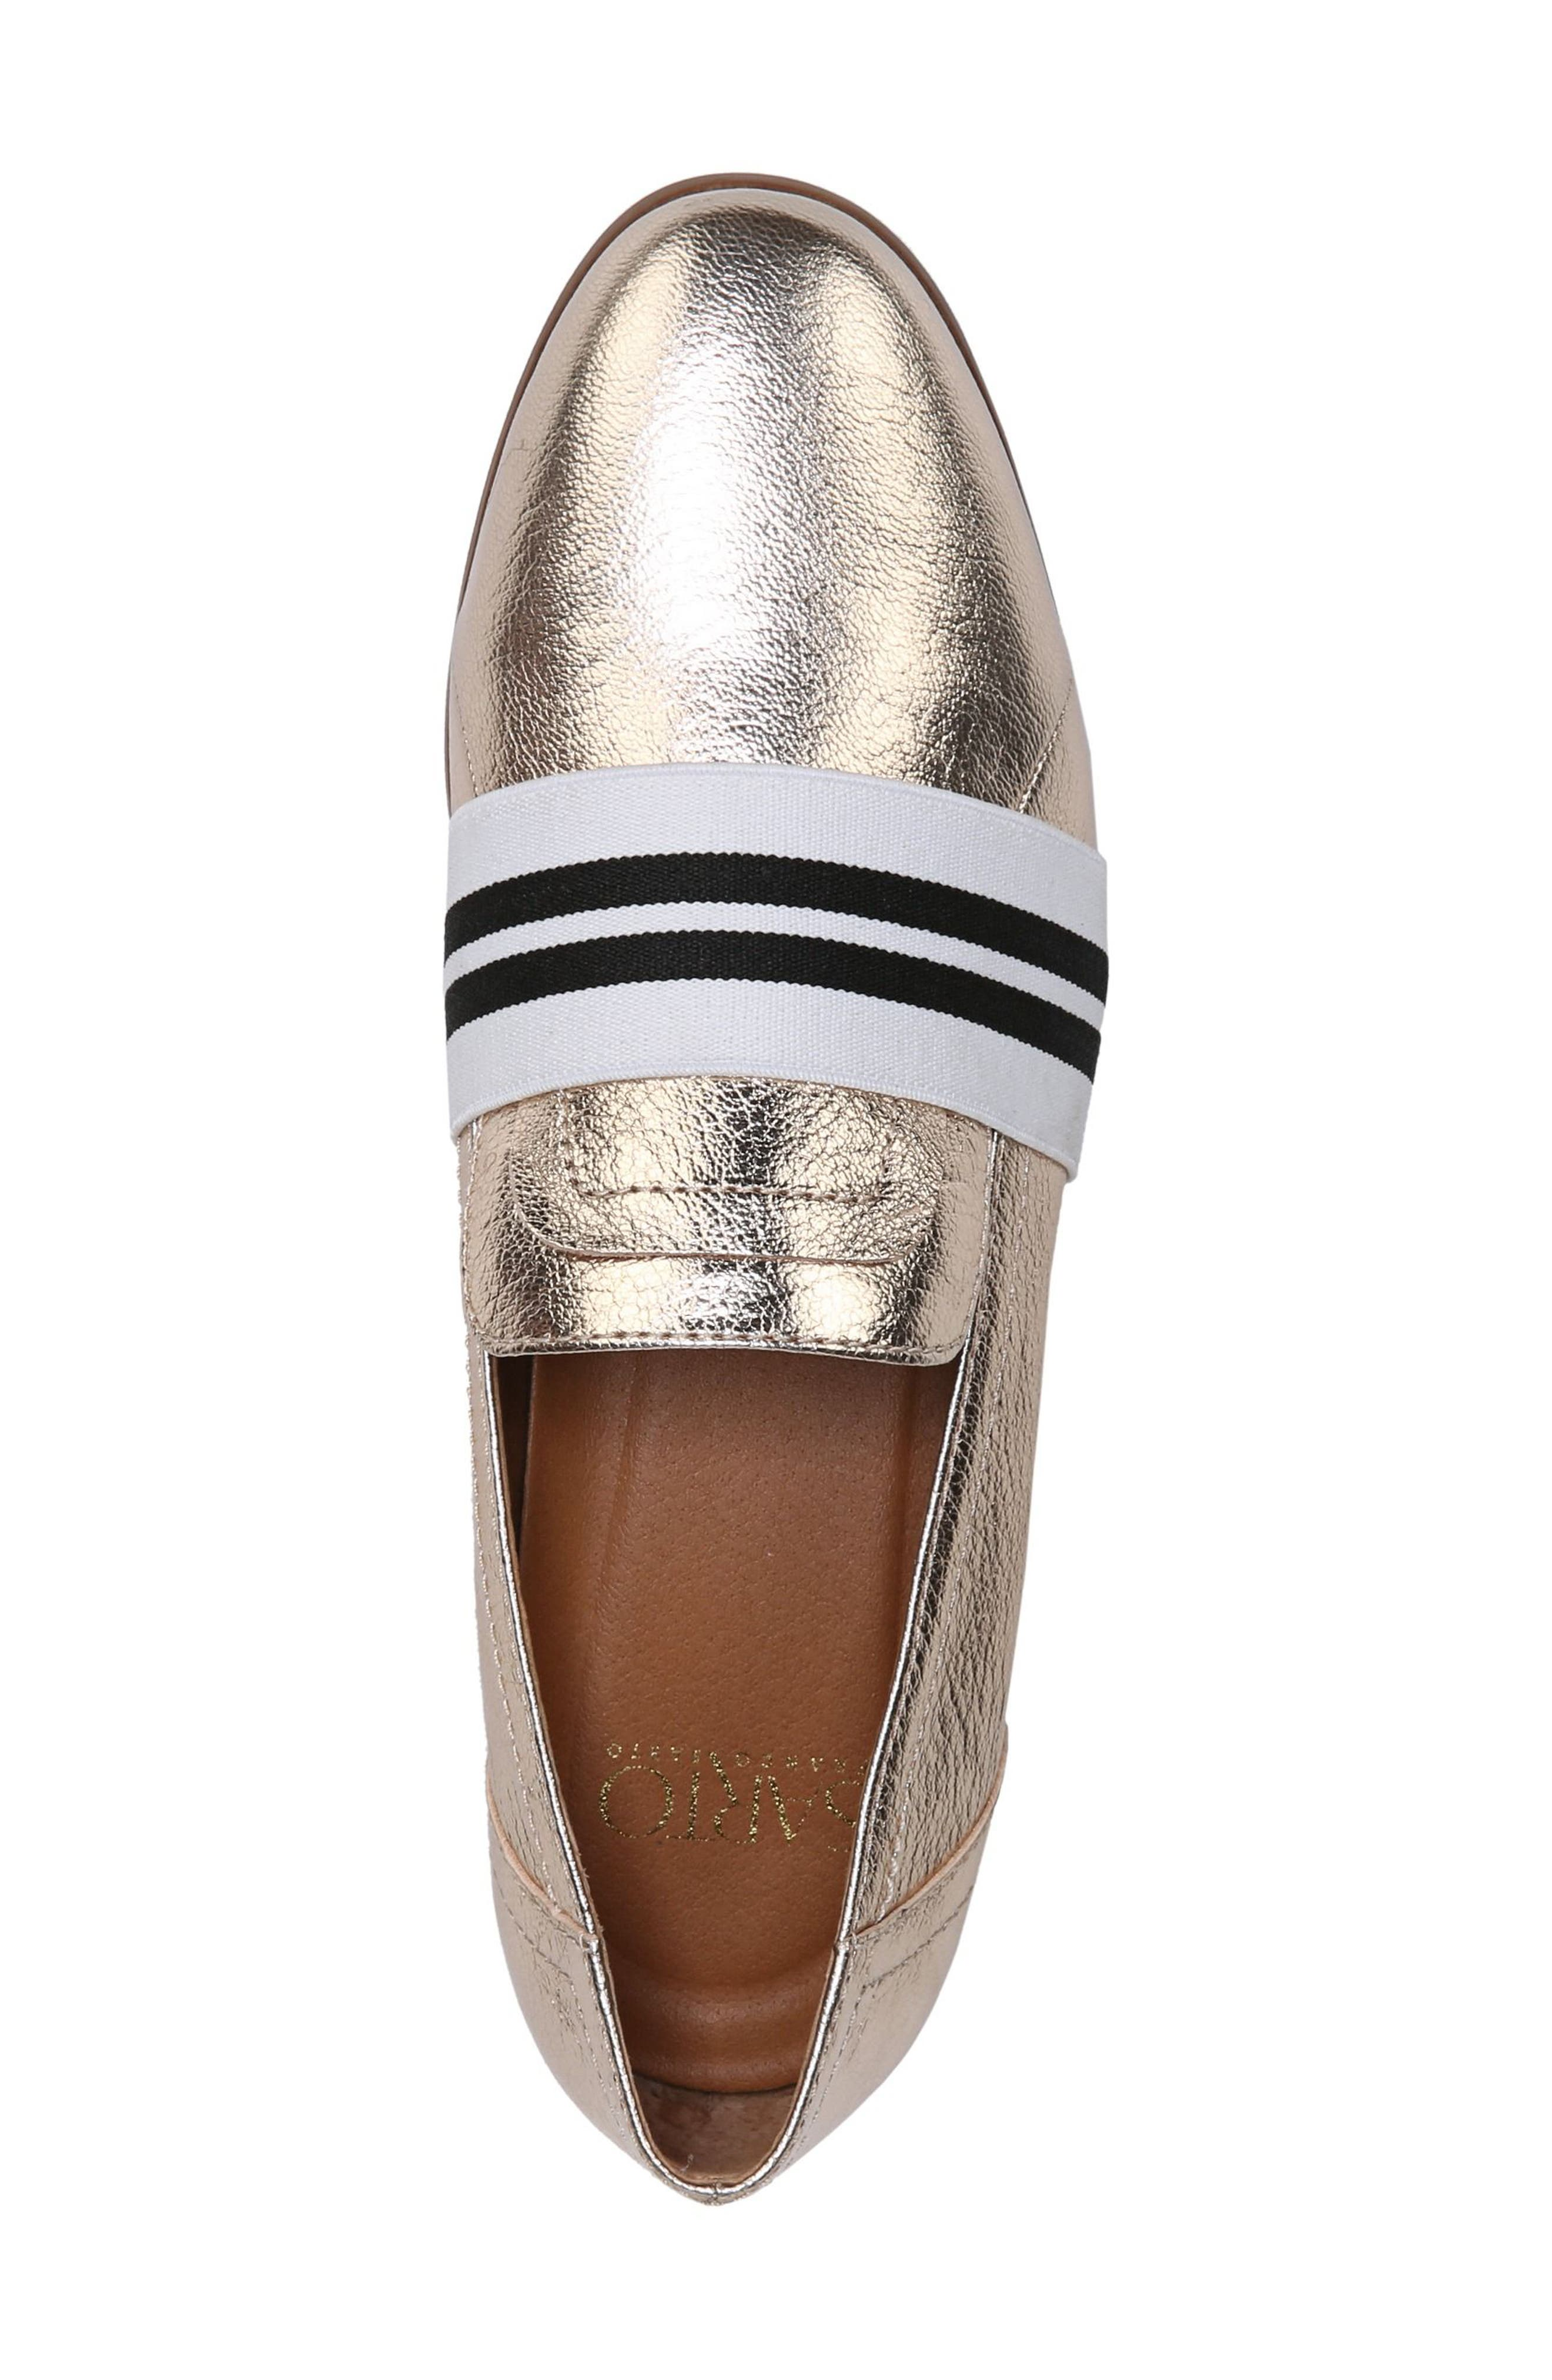 Odyssey Loafer,                             Alternate thumbnail 5, color,                             PLATINO LEATHER